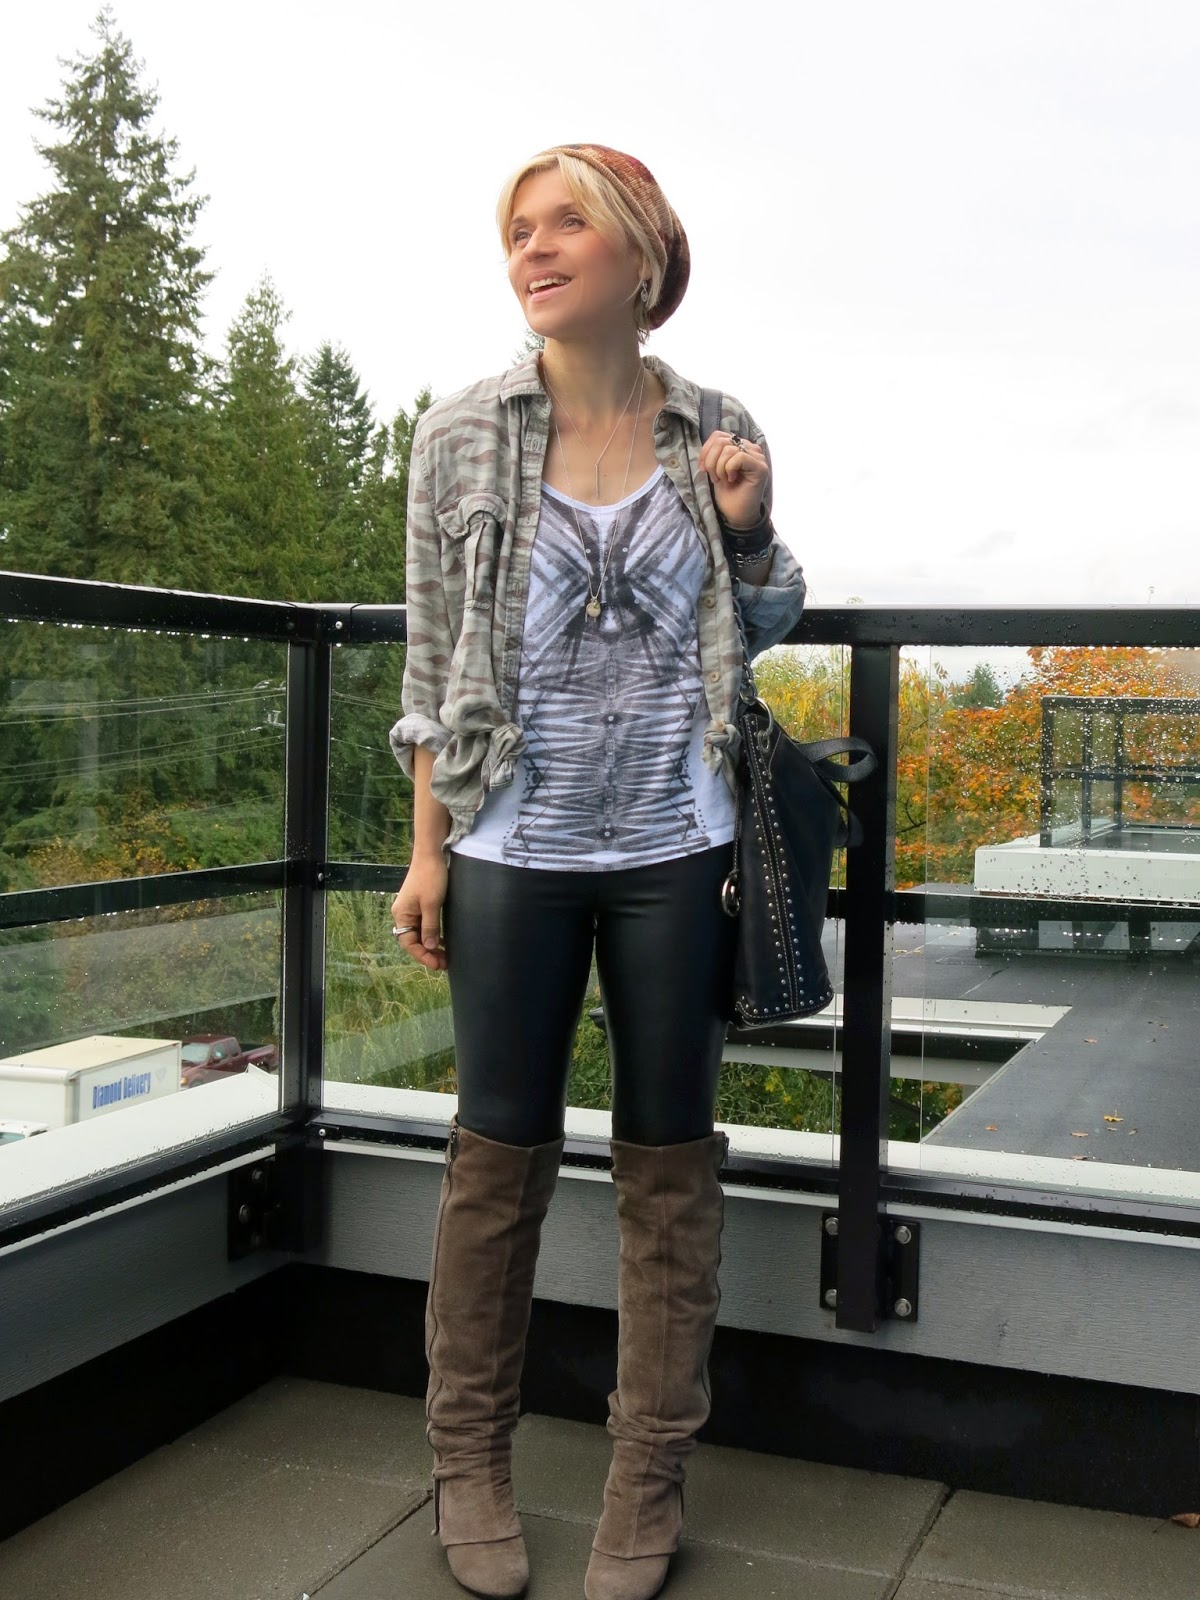 styling vegan leather leggings with over-knee suede boots, a graphic tee, camo shirt, and floral beanie